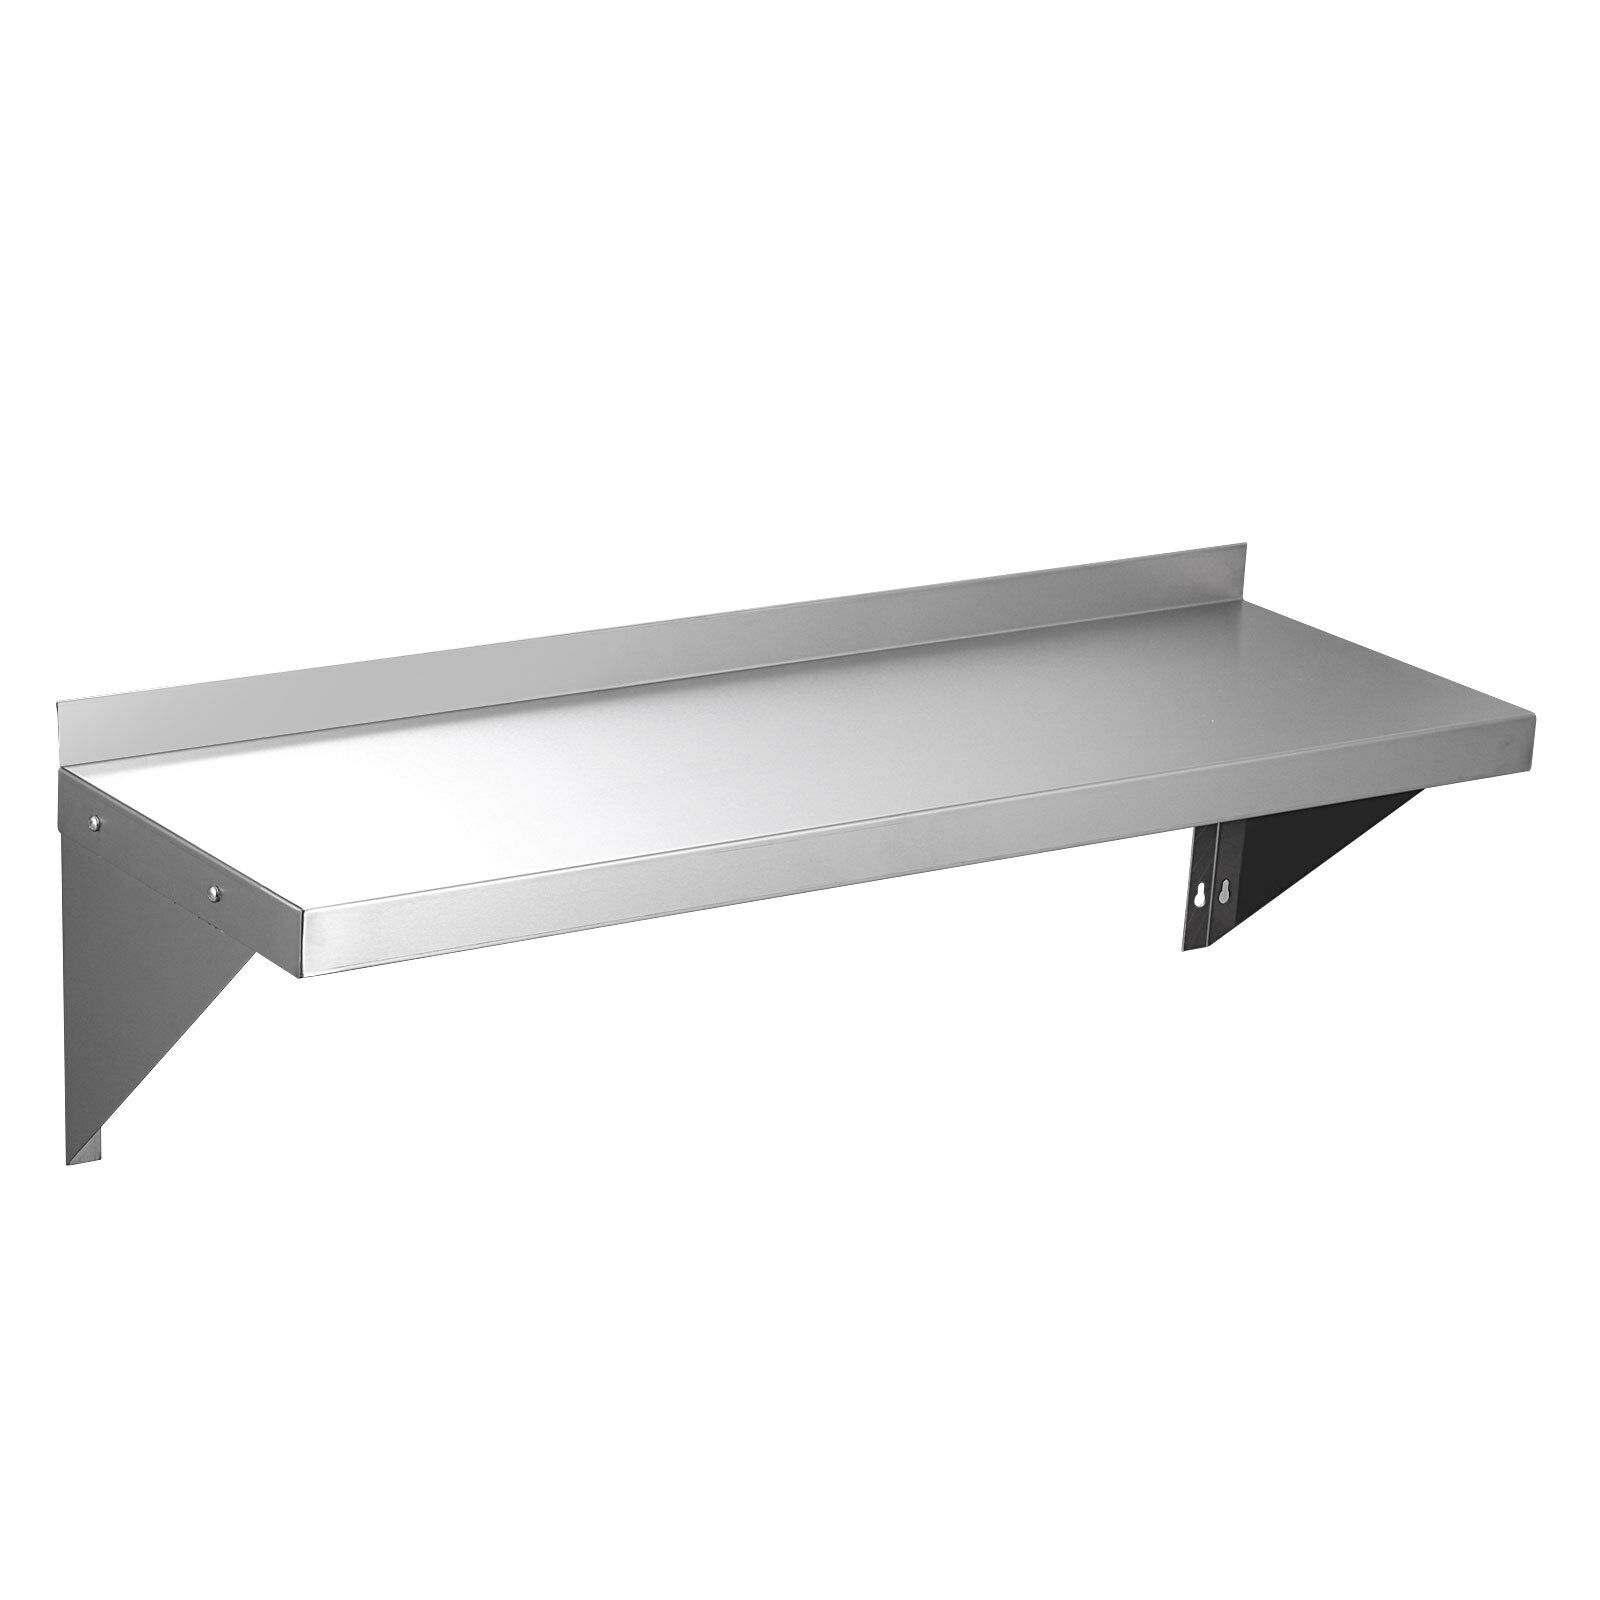 12 X36 Stainless Steel Kitchen Wall Shelf Storage Shelves